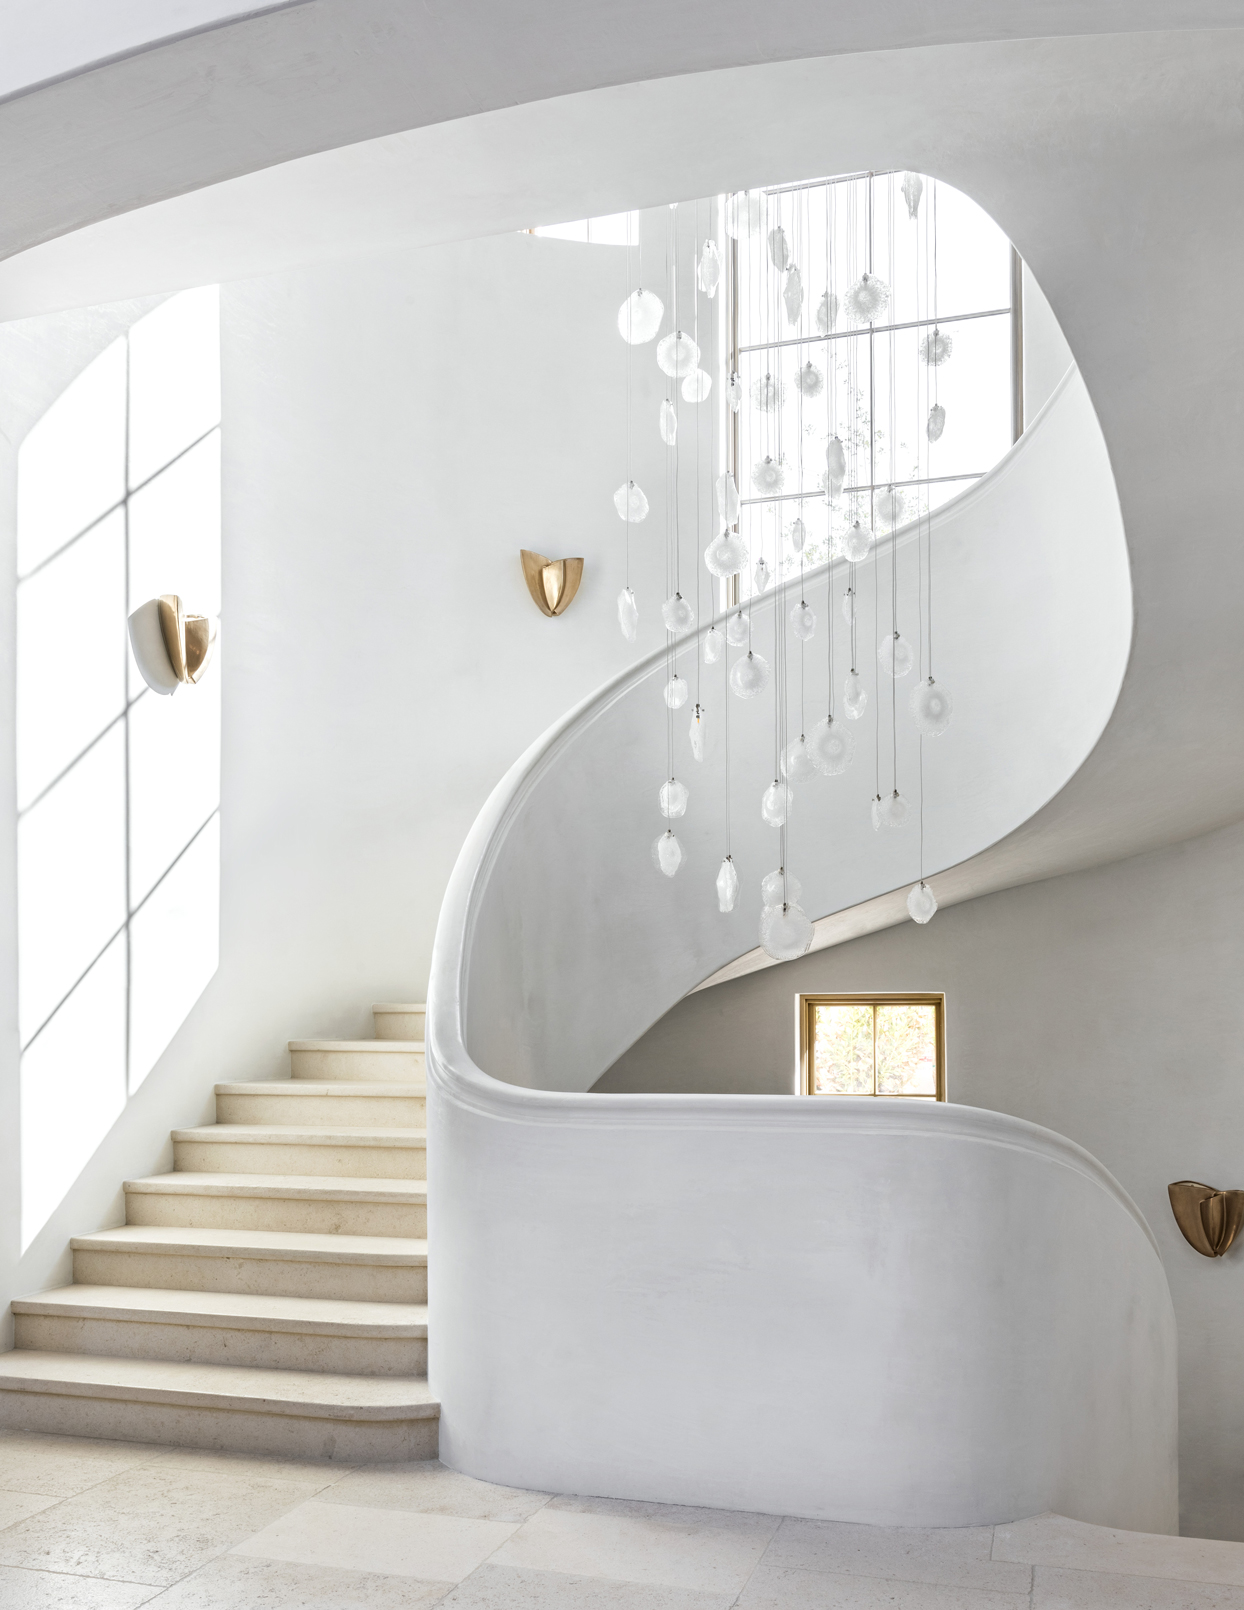 curved staircase winds around fixture dangling glass disks